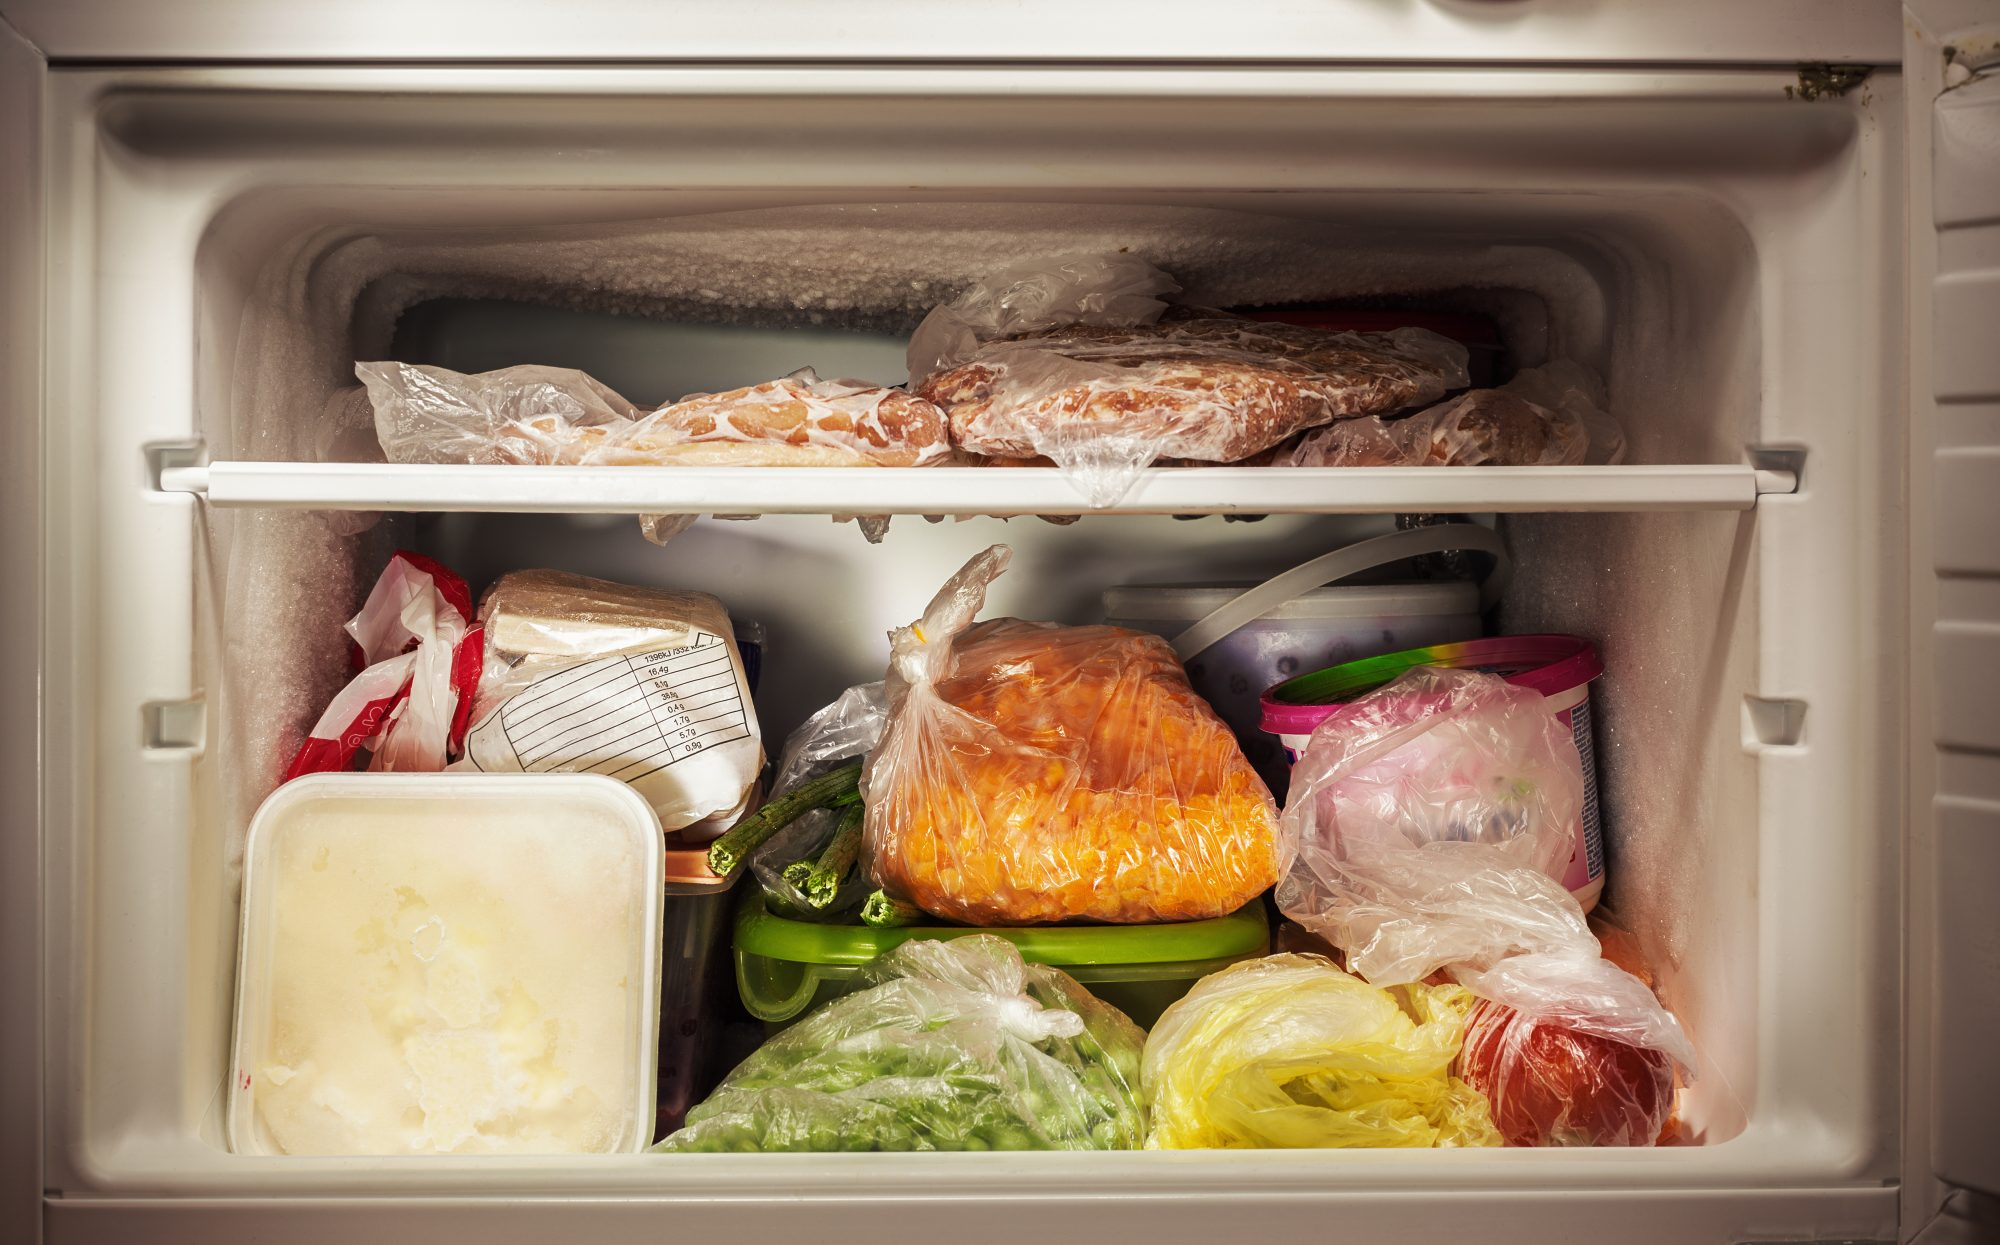 10 Myths About Frozen Foods You Need to Stop Believing